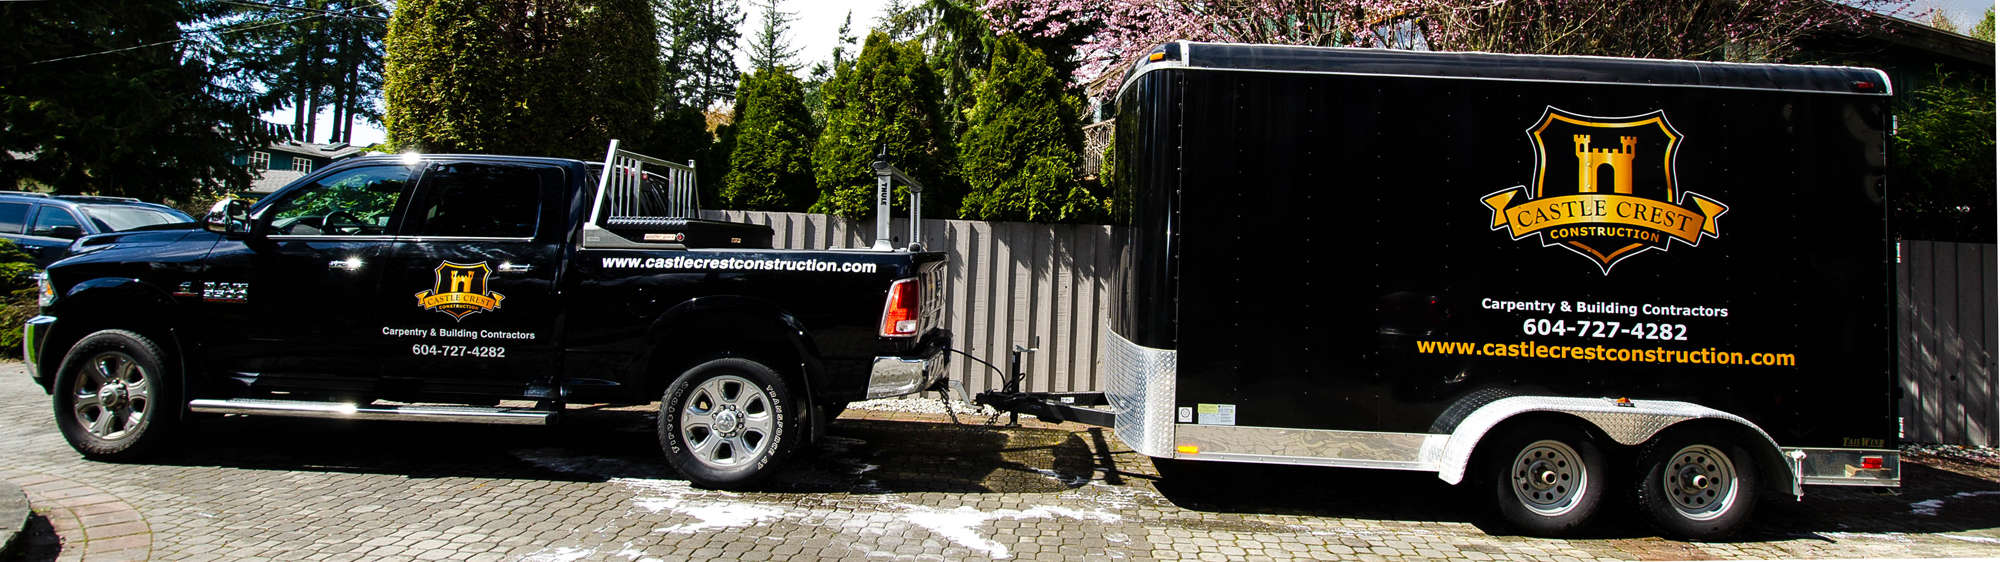 Black truck and trailer with Castle Crest Construction logo and contact information painted on the side.